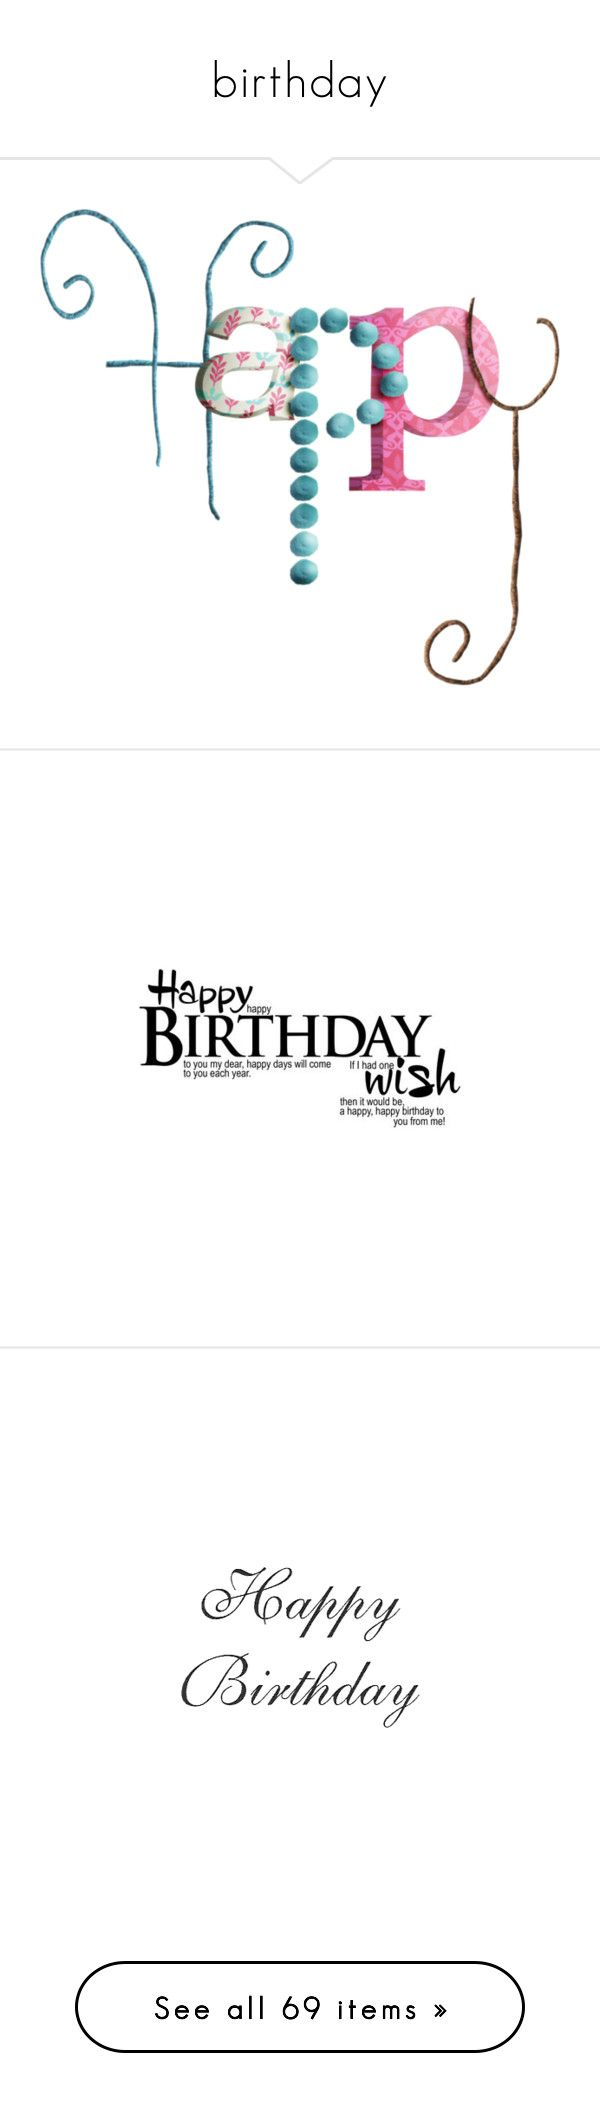 """""""birthday"""" by koala889 ❤ liked on Polyvore featuring birthday, words, happy birthday, text, backgrounds, phrase, quotes, saying, fillers and celebration"""